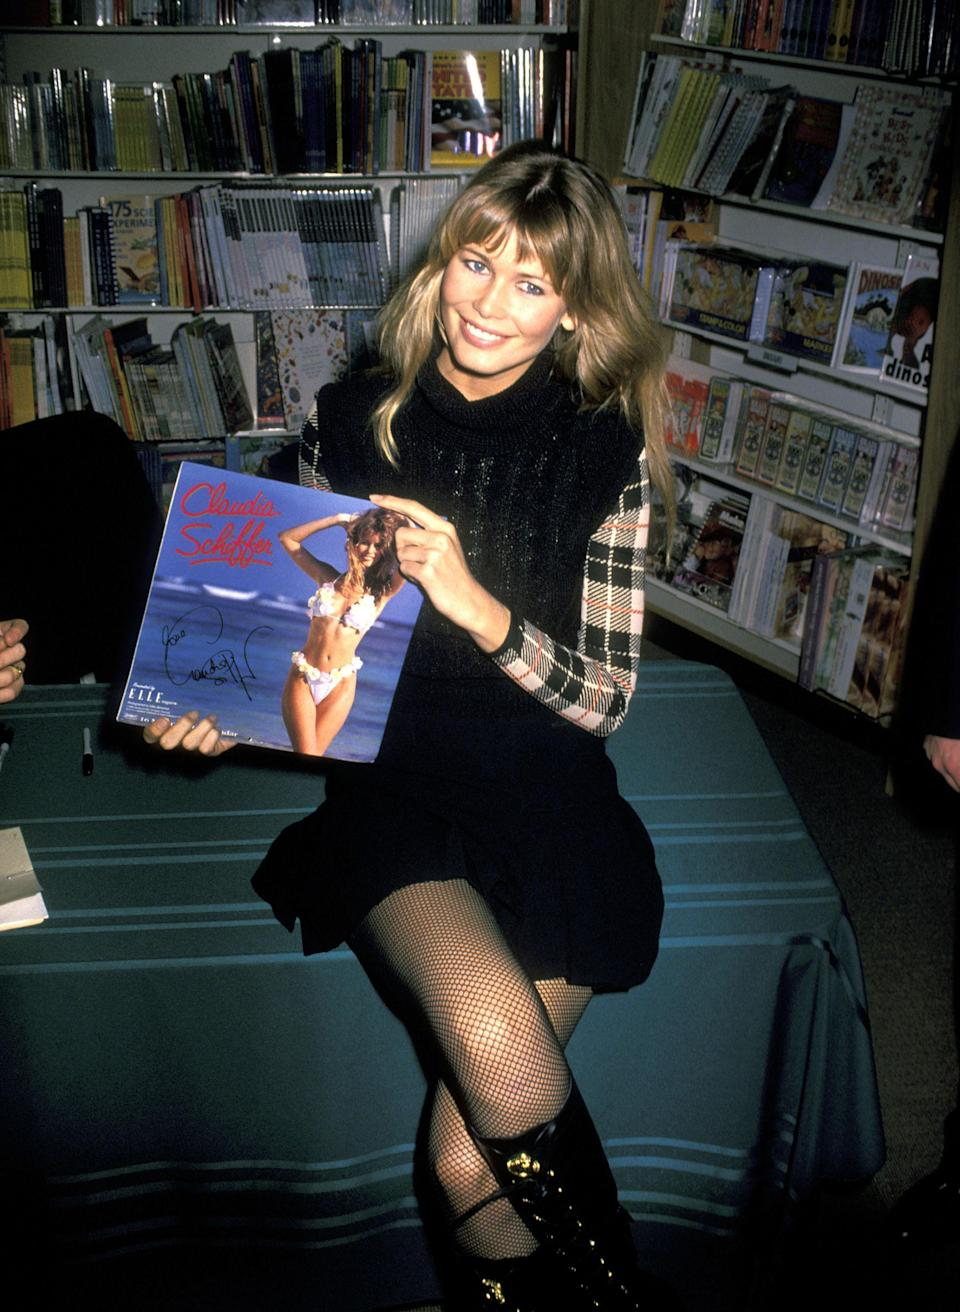 <p>Claudia wears thigh-high boots and a plaid shirt a swimsuit calendar store promotion, 1994</p>